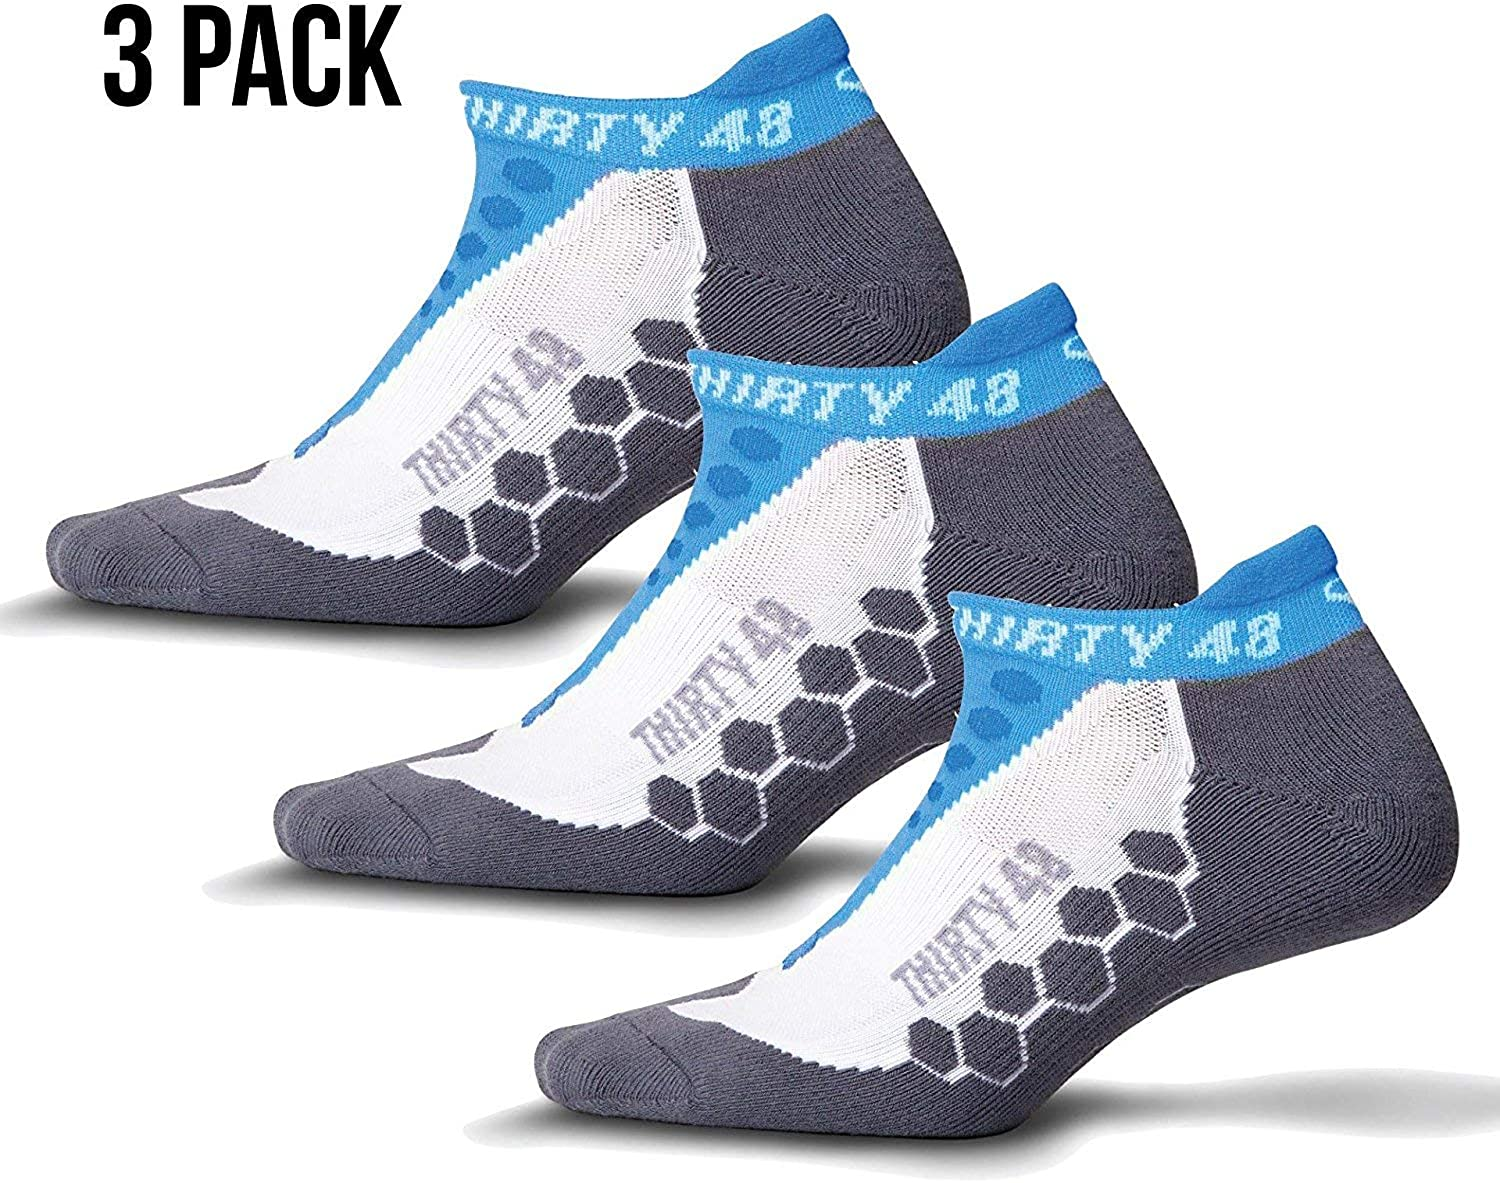 Thirty 48 Running Socks for Men and Women by Features Coolmax Fabric That Keeps Feet Cool & Dry  1 Pair, 3 Pair, or 6 Pair